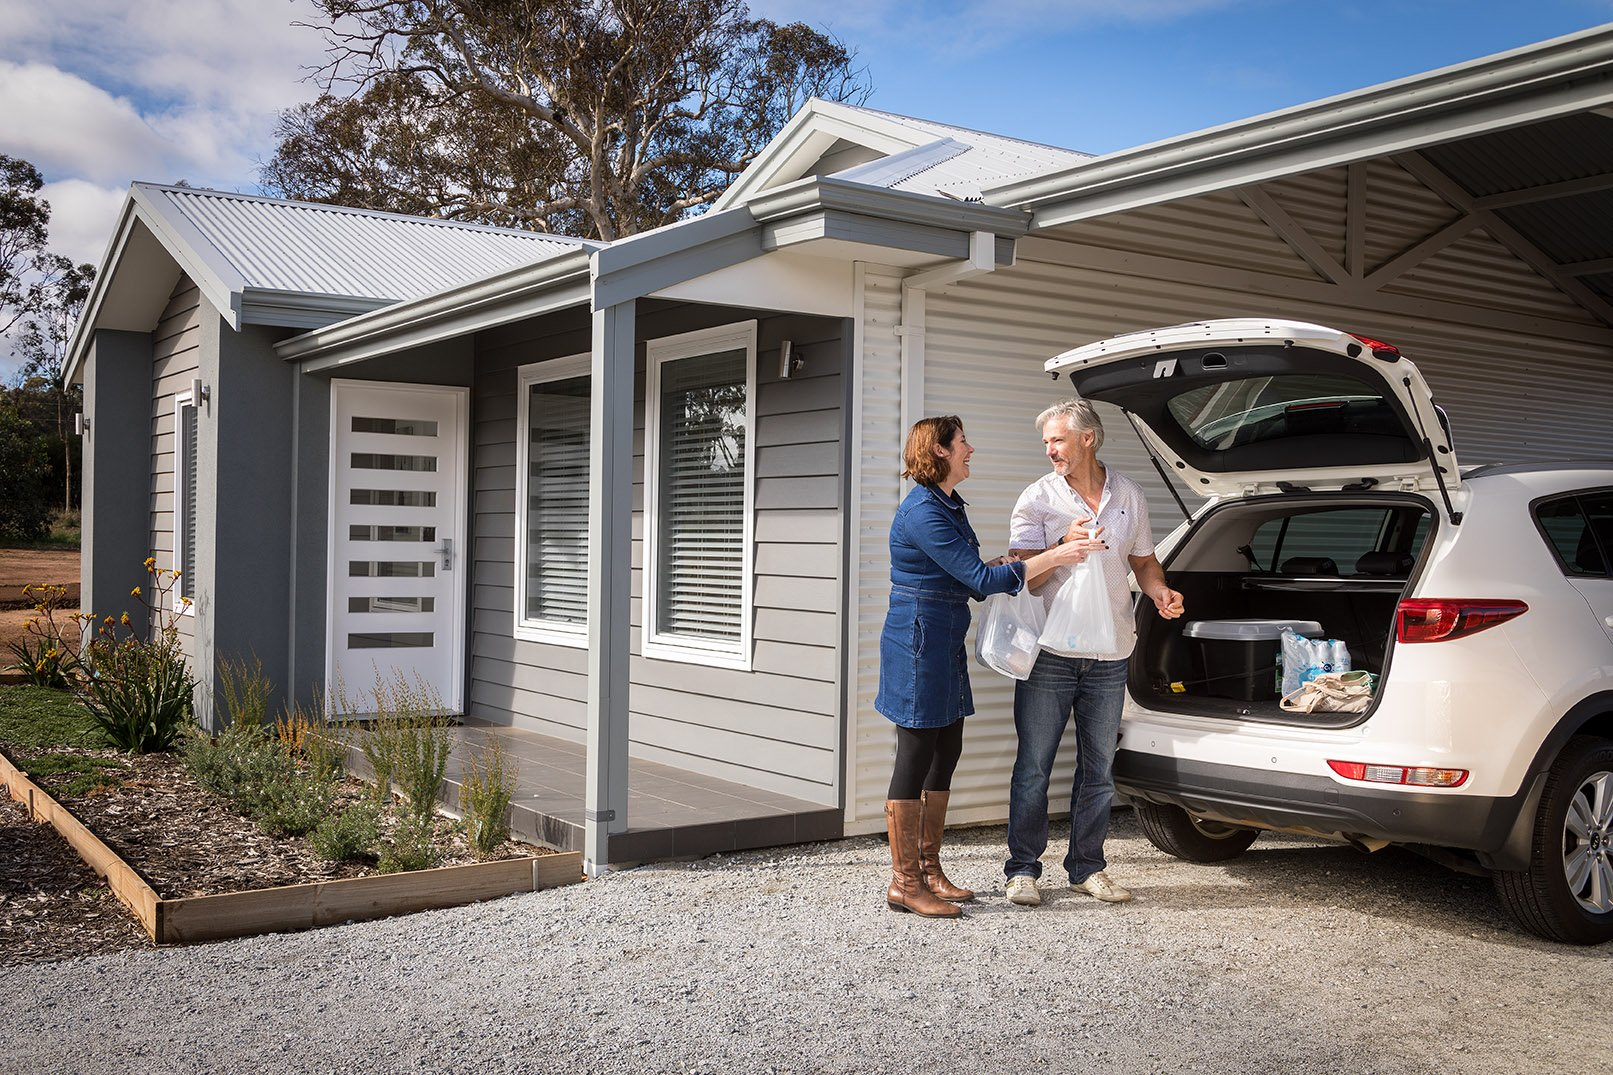 Middle aged couple talking and standing in front of home with car parked under the carport and boot opened | Transportable Homes WA